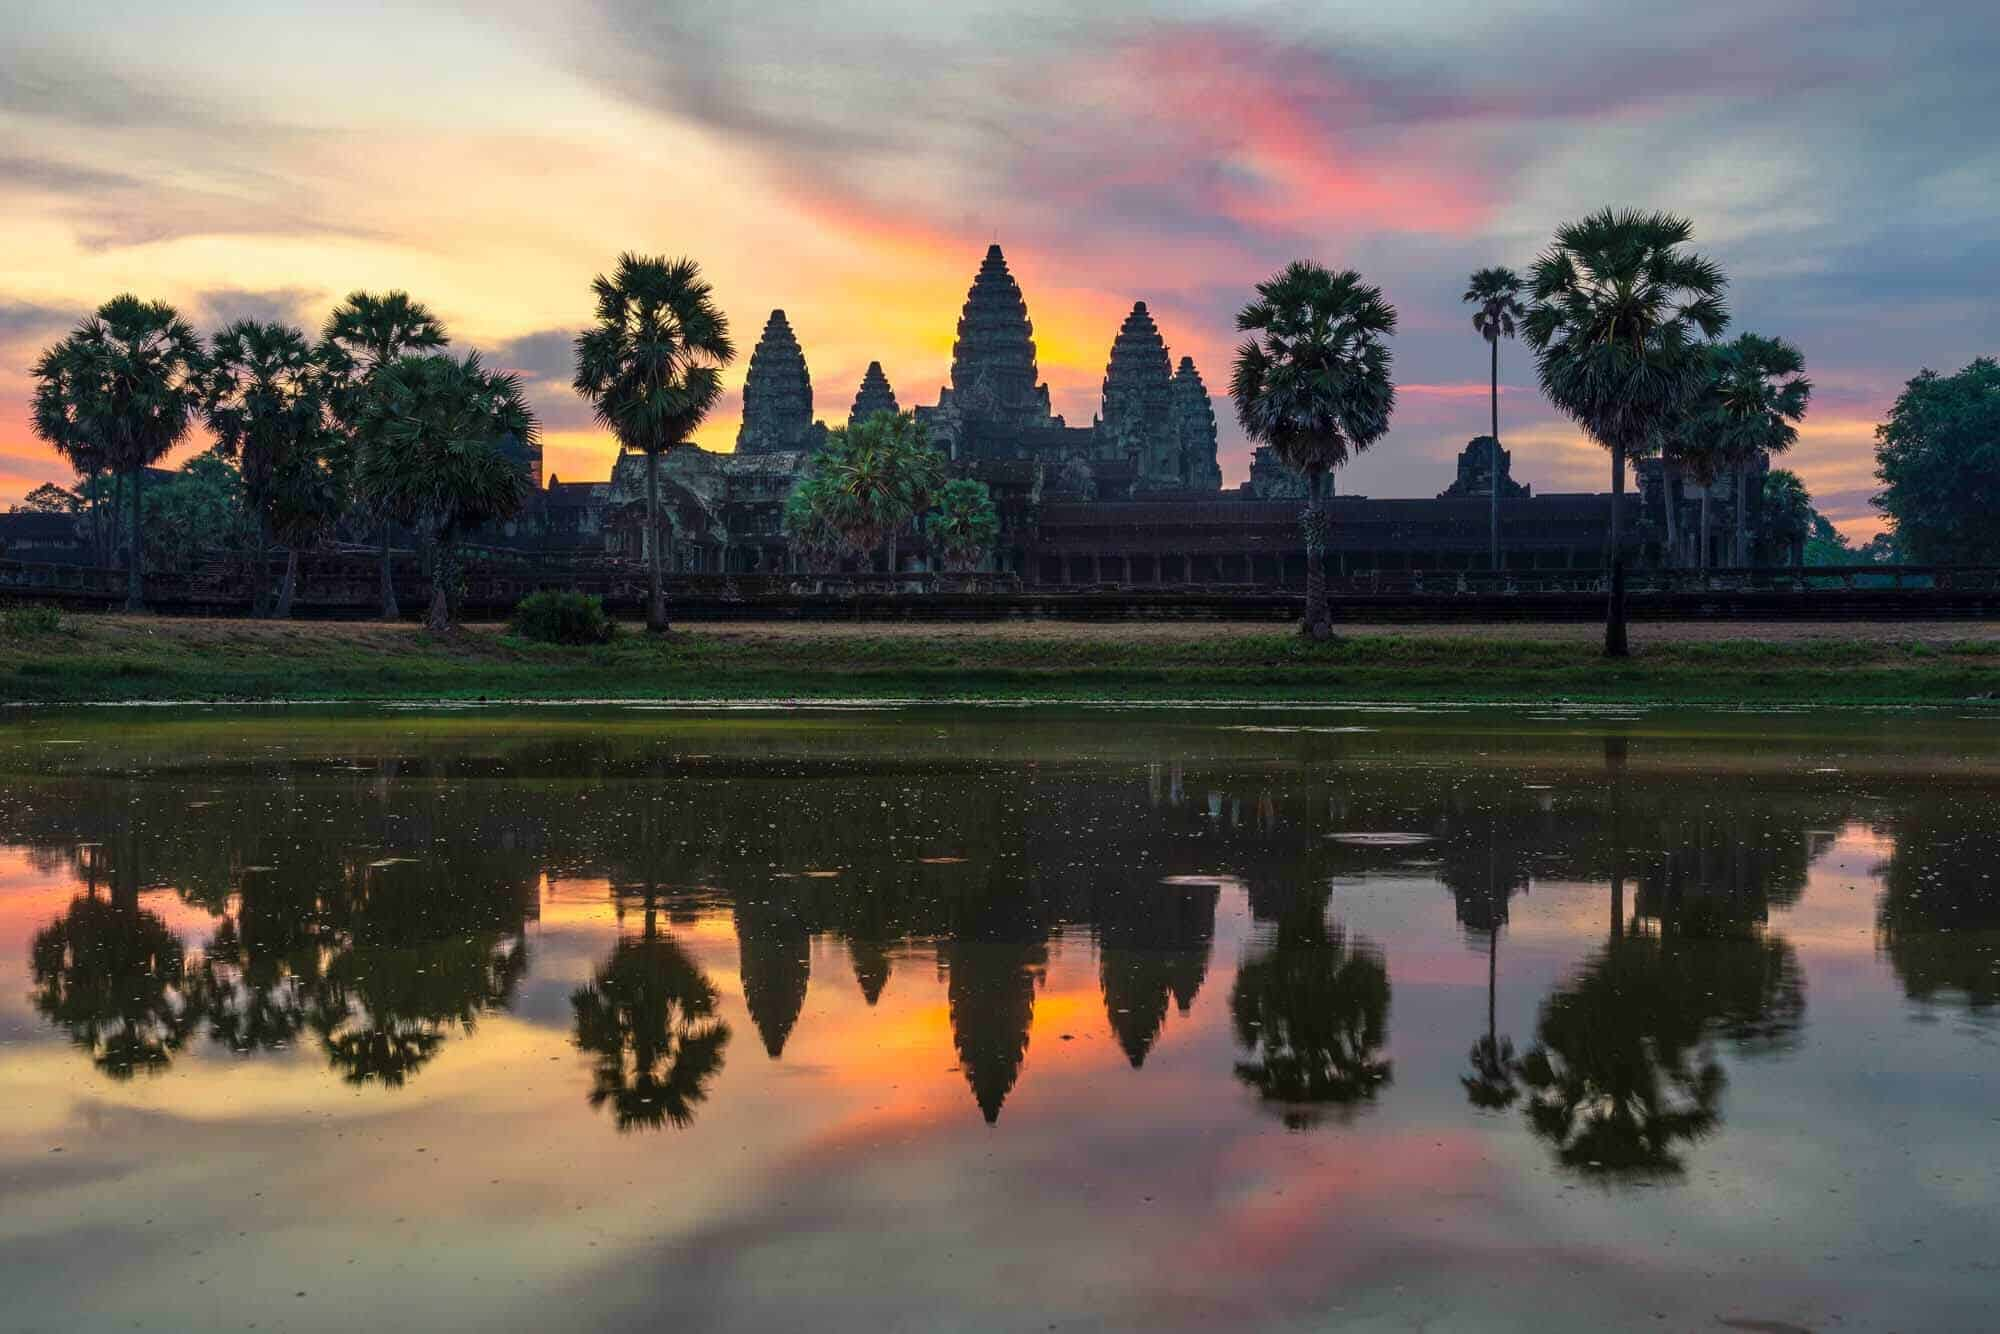 The ULTIMATE GUIDE TO ANGKOR WAT